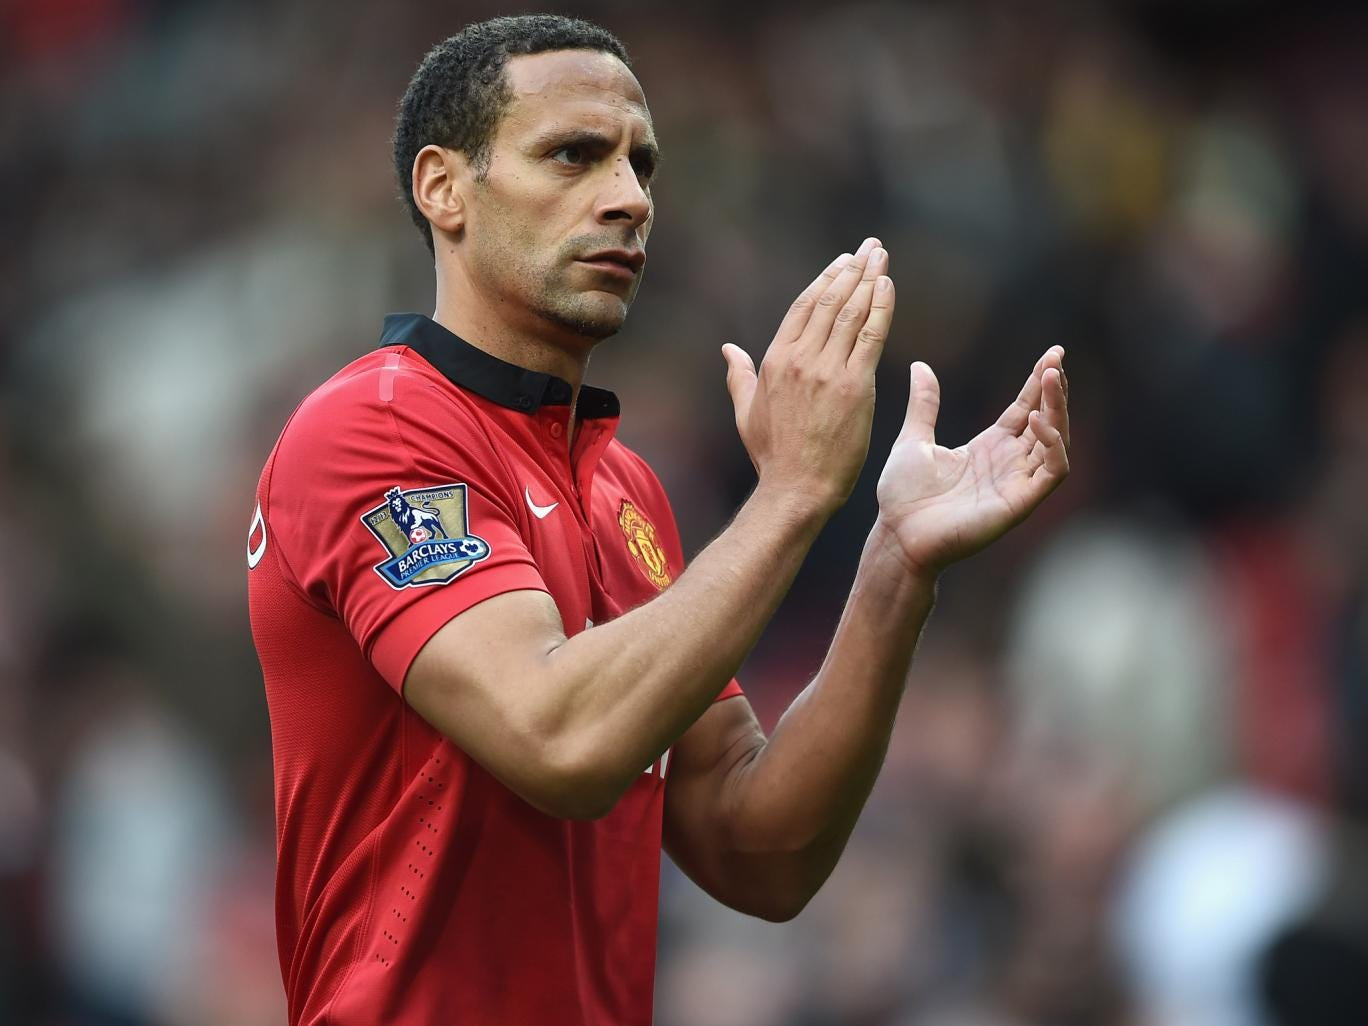 Rio Ferdinand has revealed his intention to continue his playing career with Manchester United